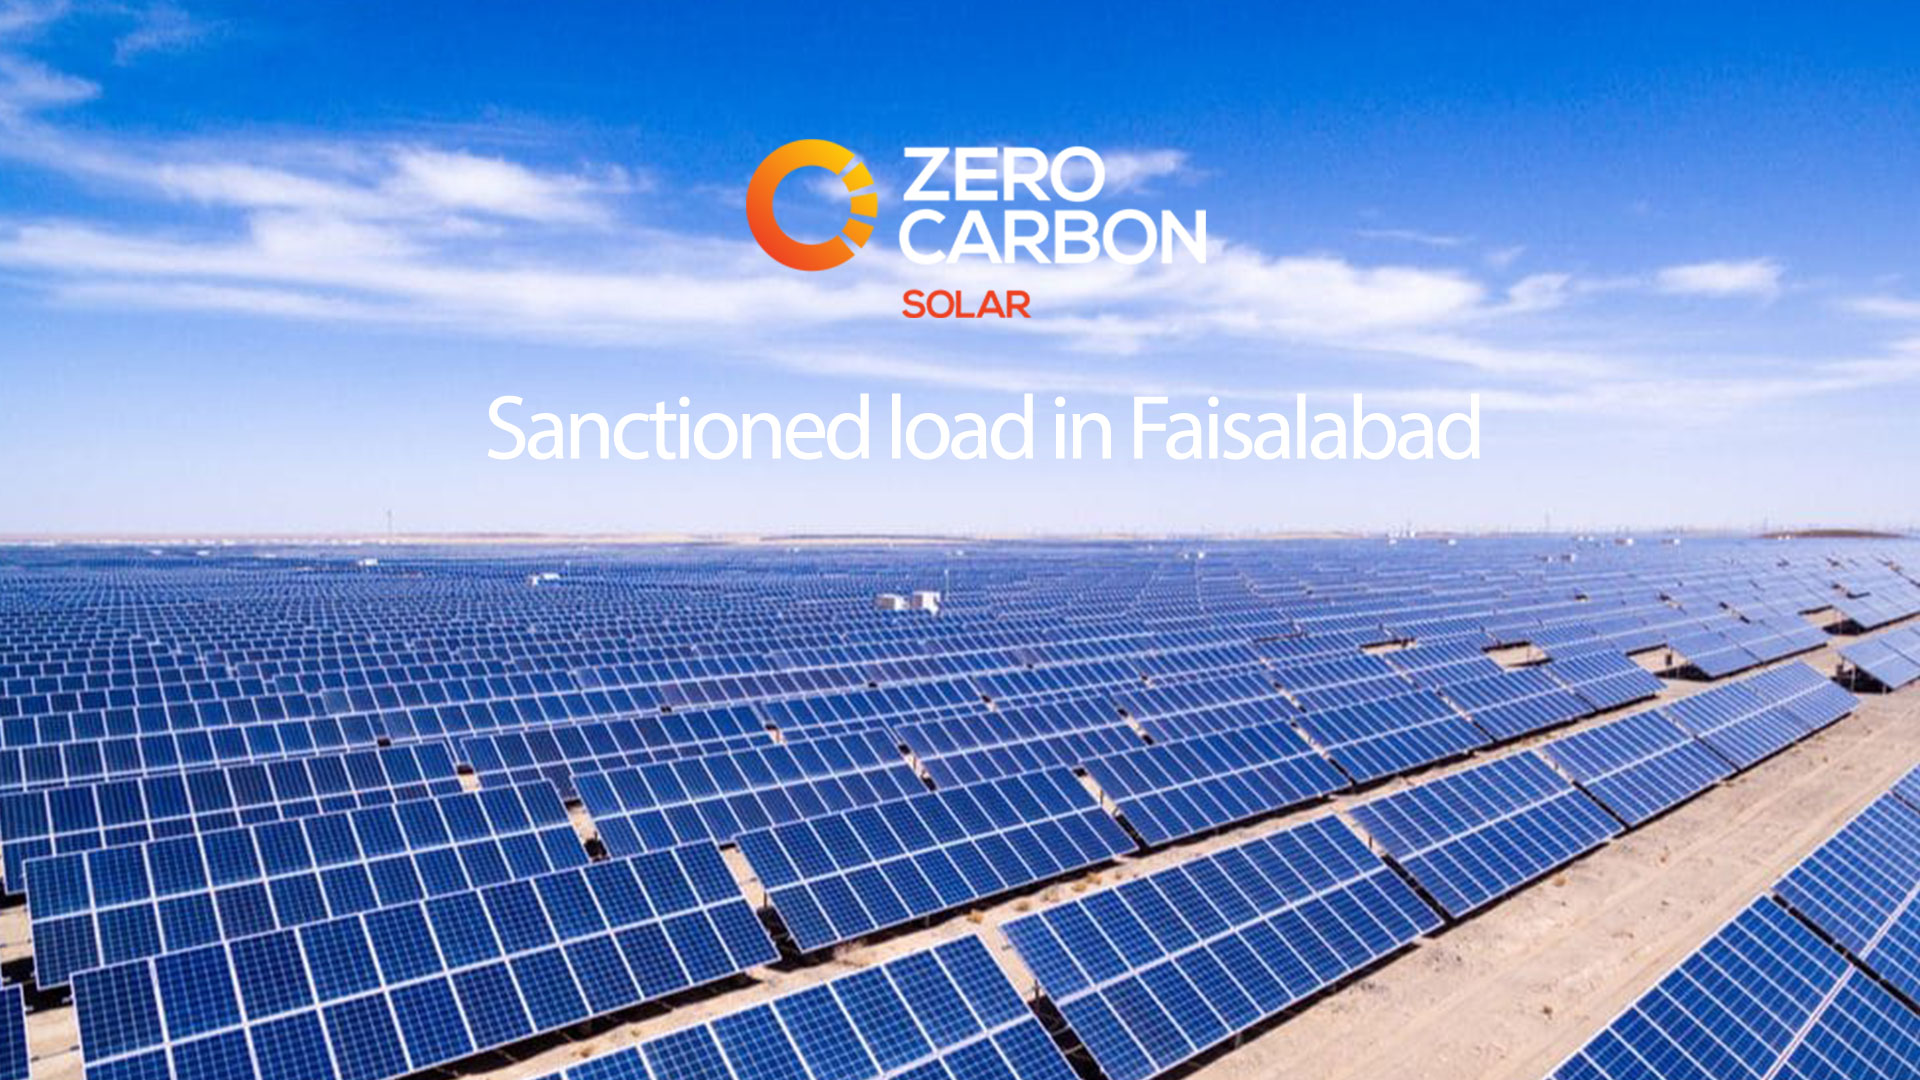 Sanctioned load in Faisalabad